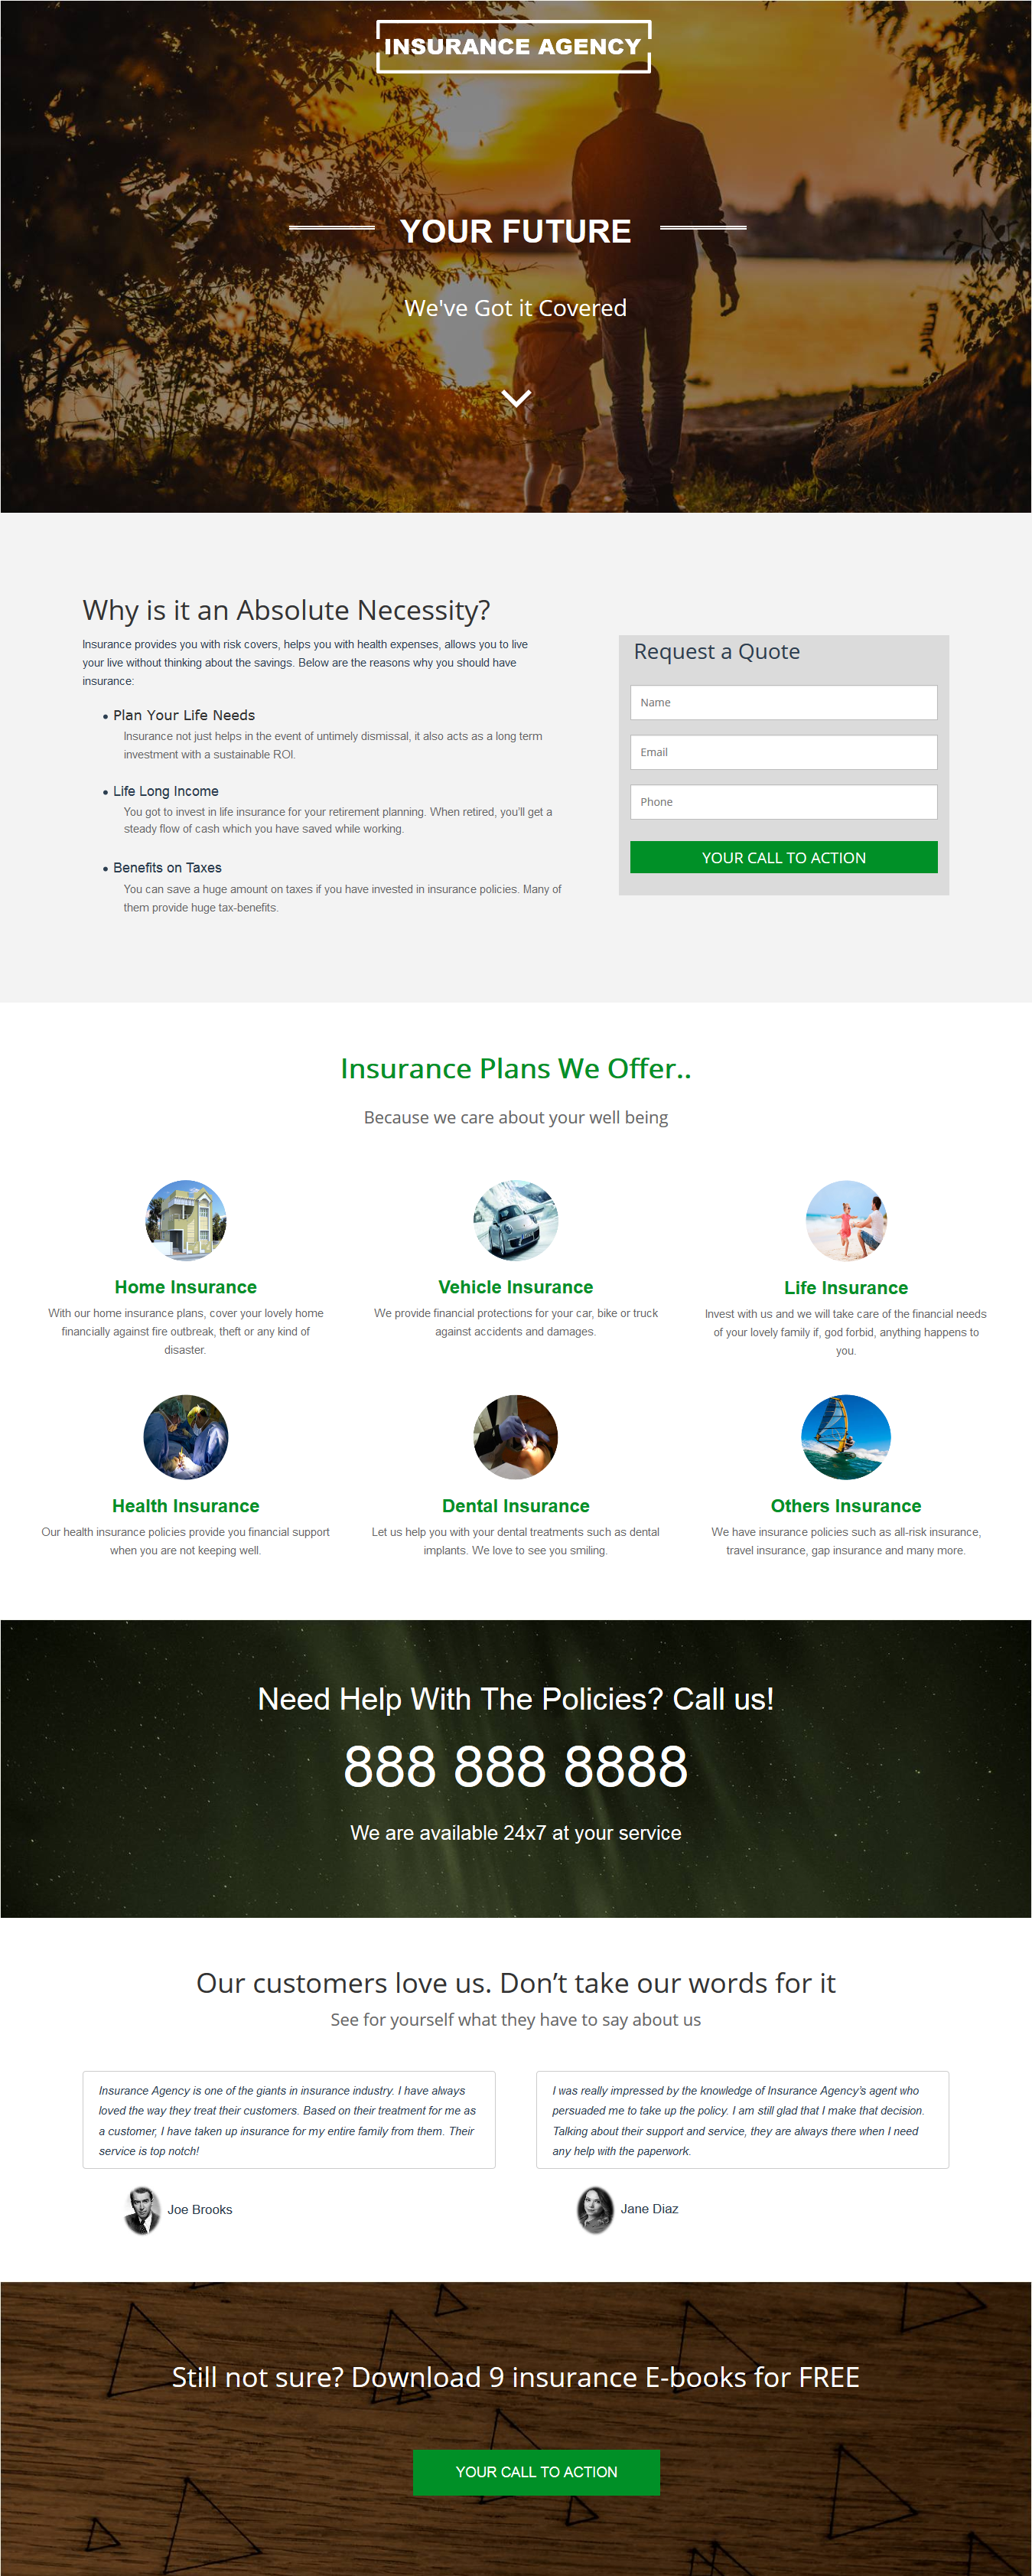 Insurance Agency Landing Page Template